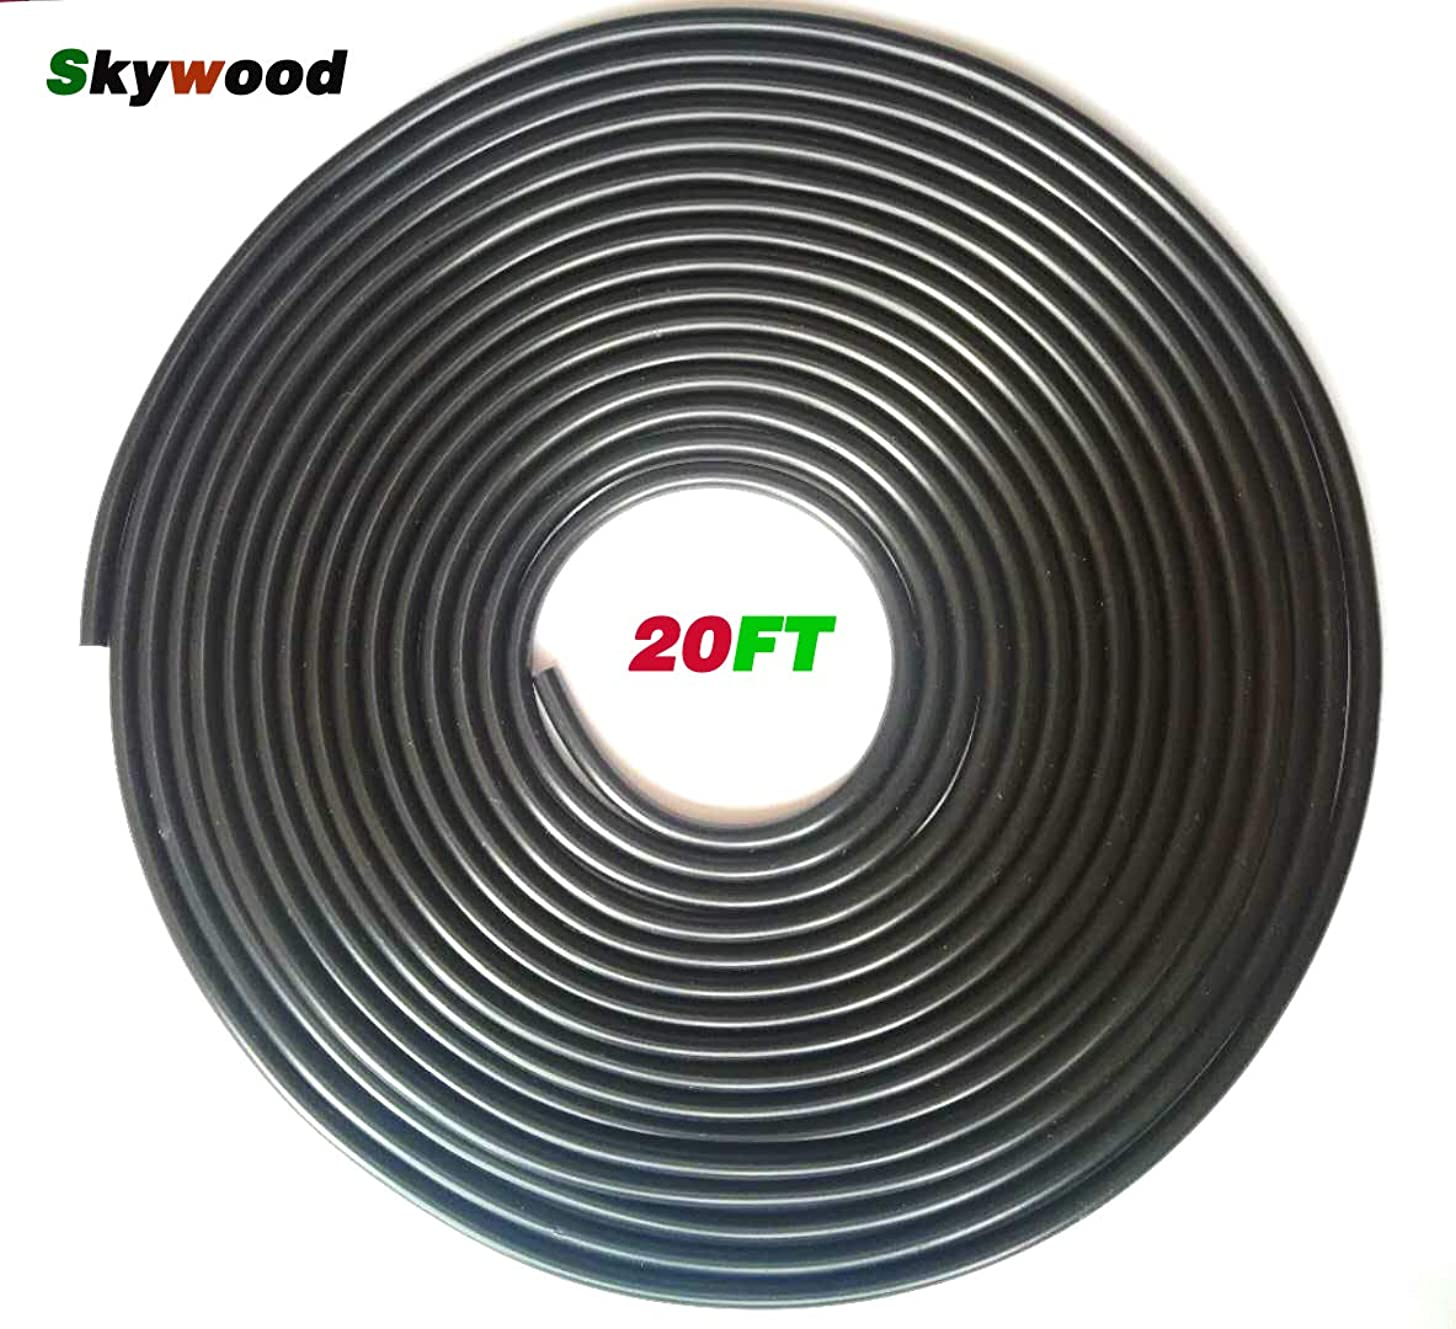 Skywood Aquarium Air Tubing 3/16-Inch,20-FT Flexible for Aquariums, Terrariums, and Hydroponics(Black)